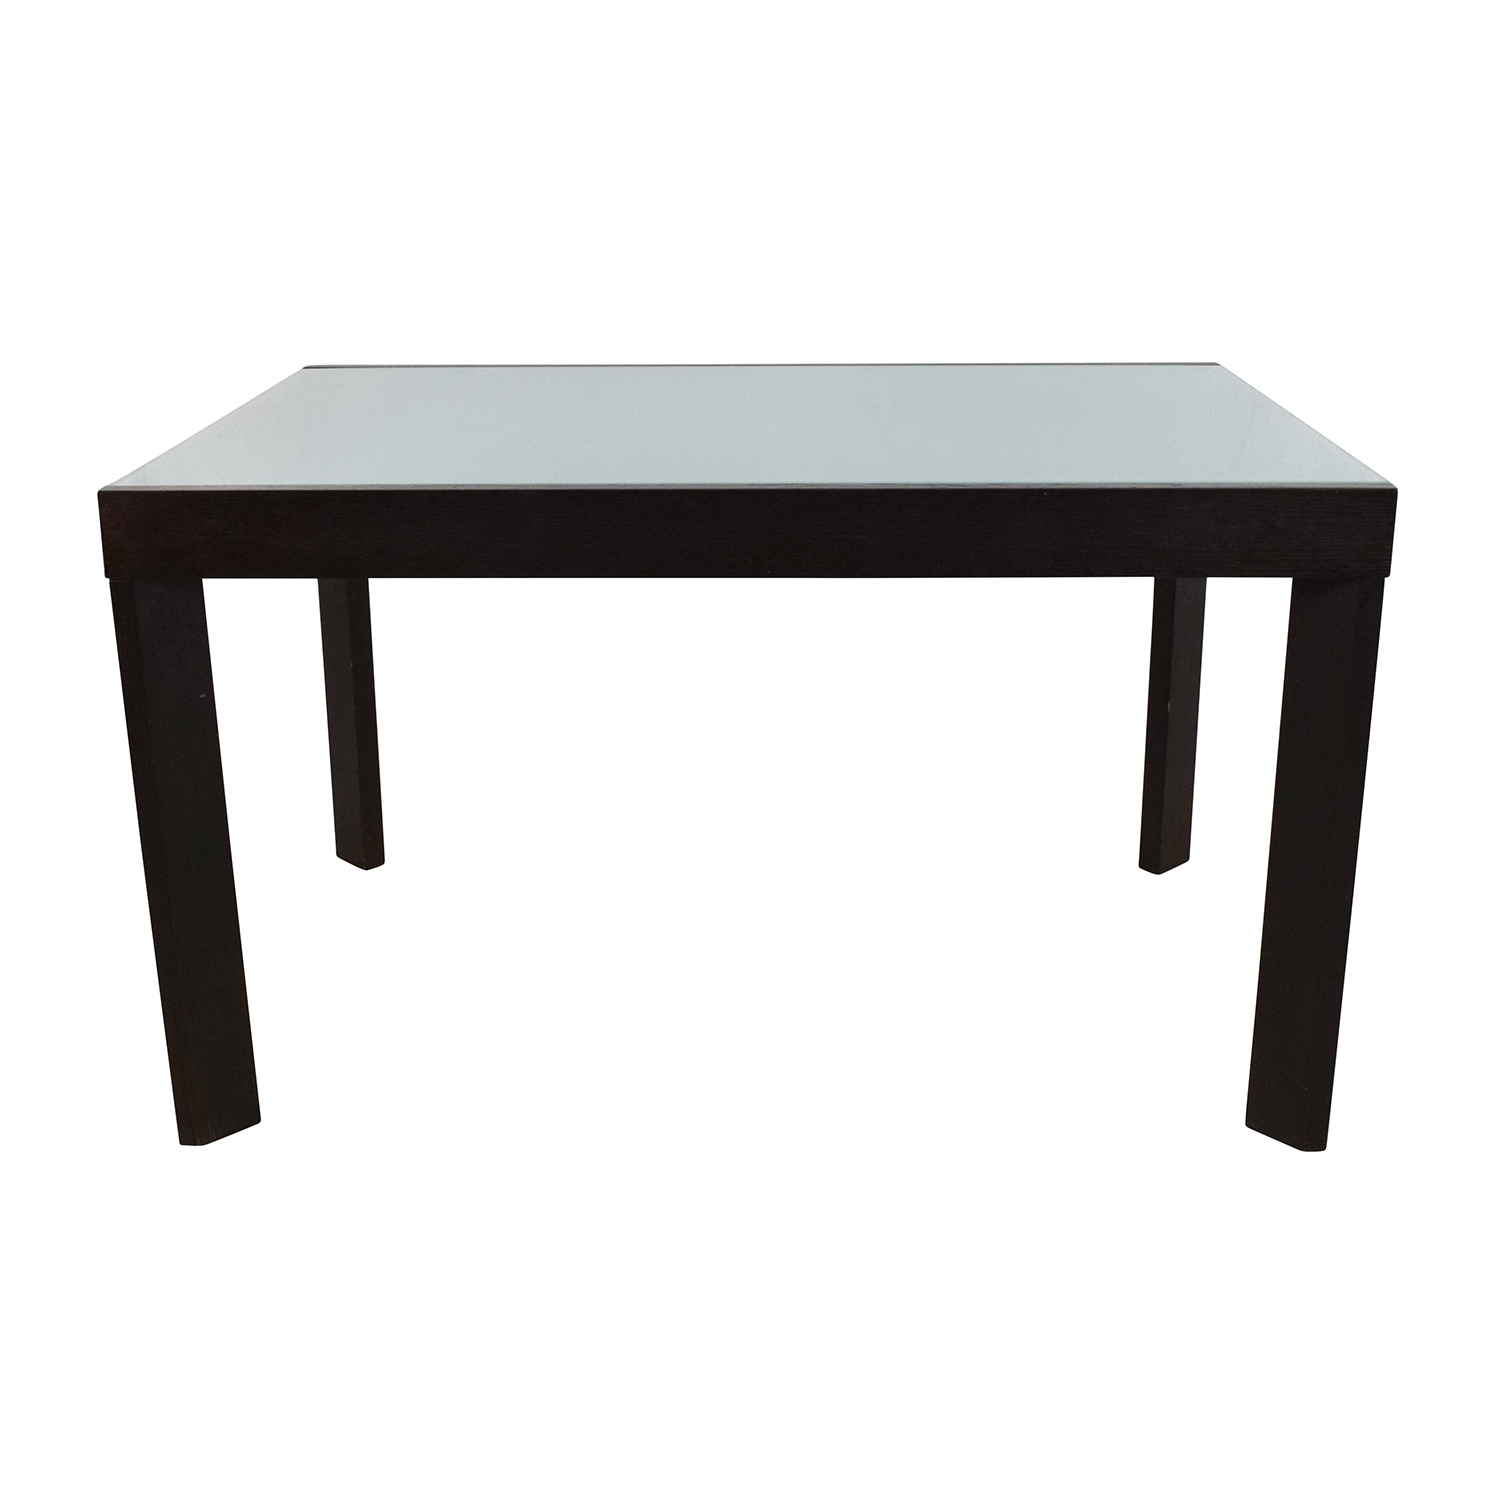 Calligaris Extendable Glass Dining Table Calligaris